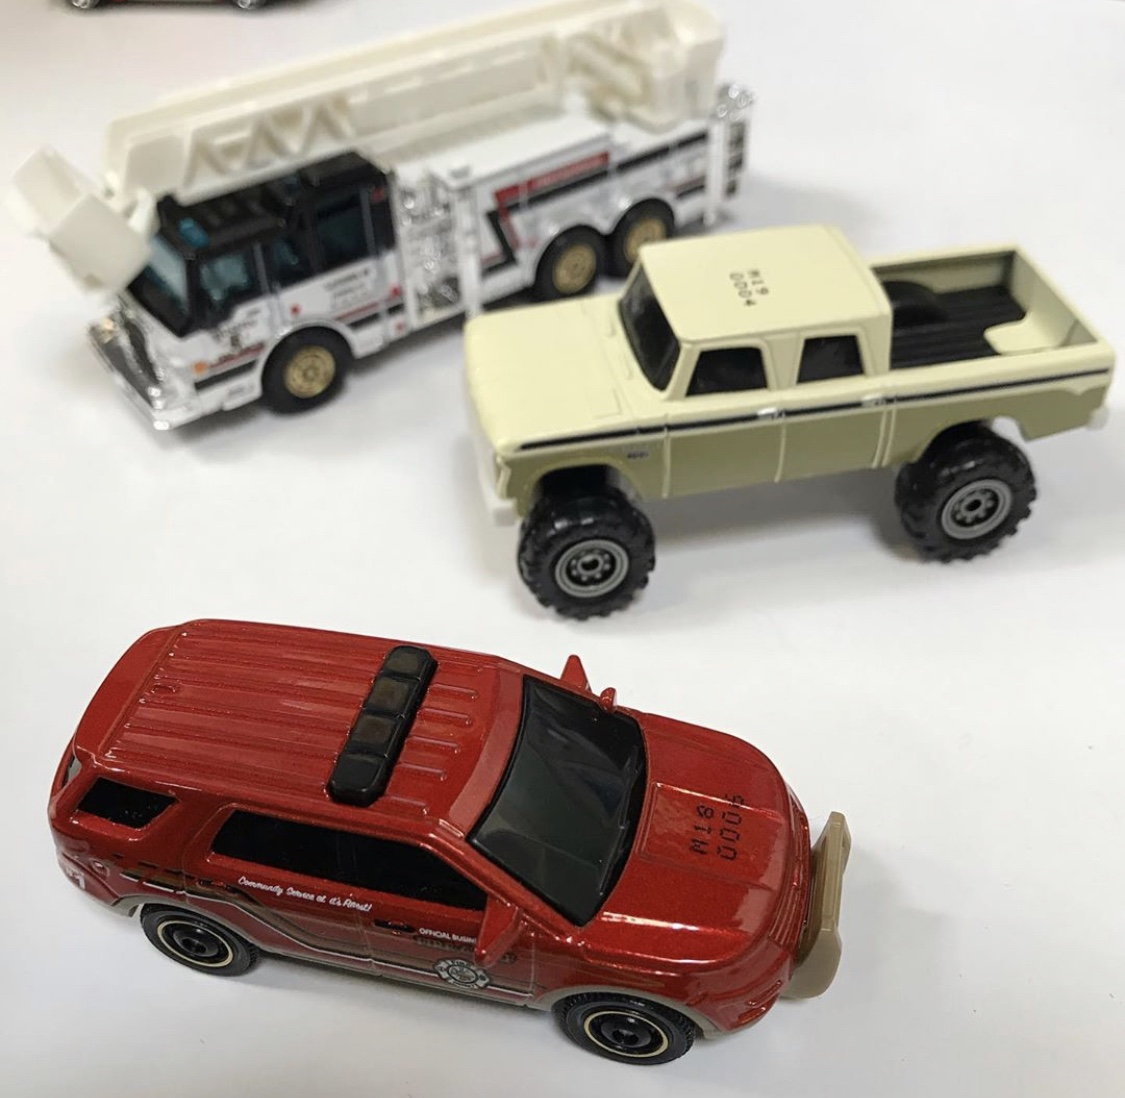 Matchbox Drops Another Sneak Peak Of Later 2019 2020 Models One Has A Very Cool Purpose Lamleygroup